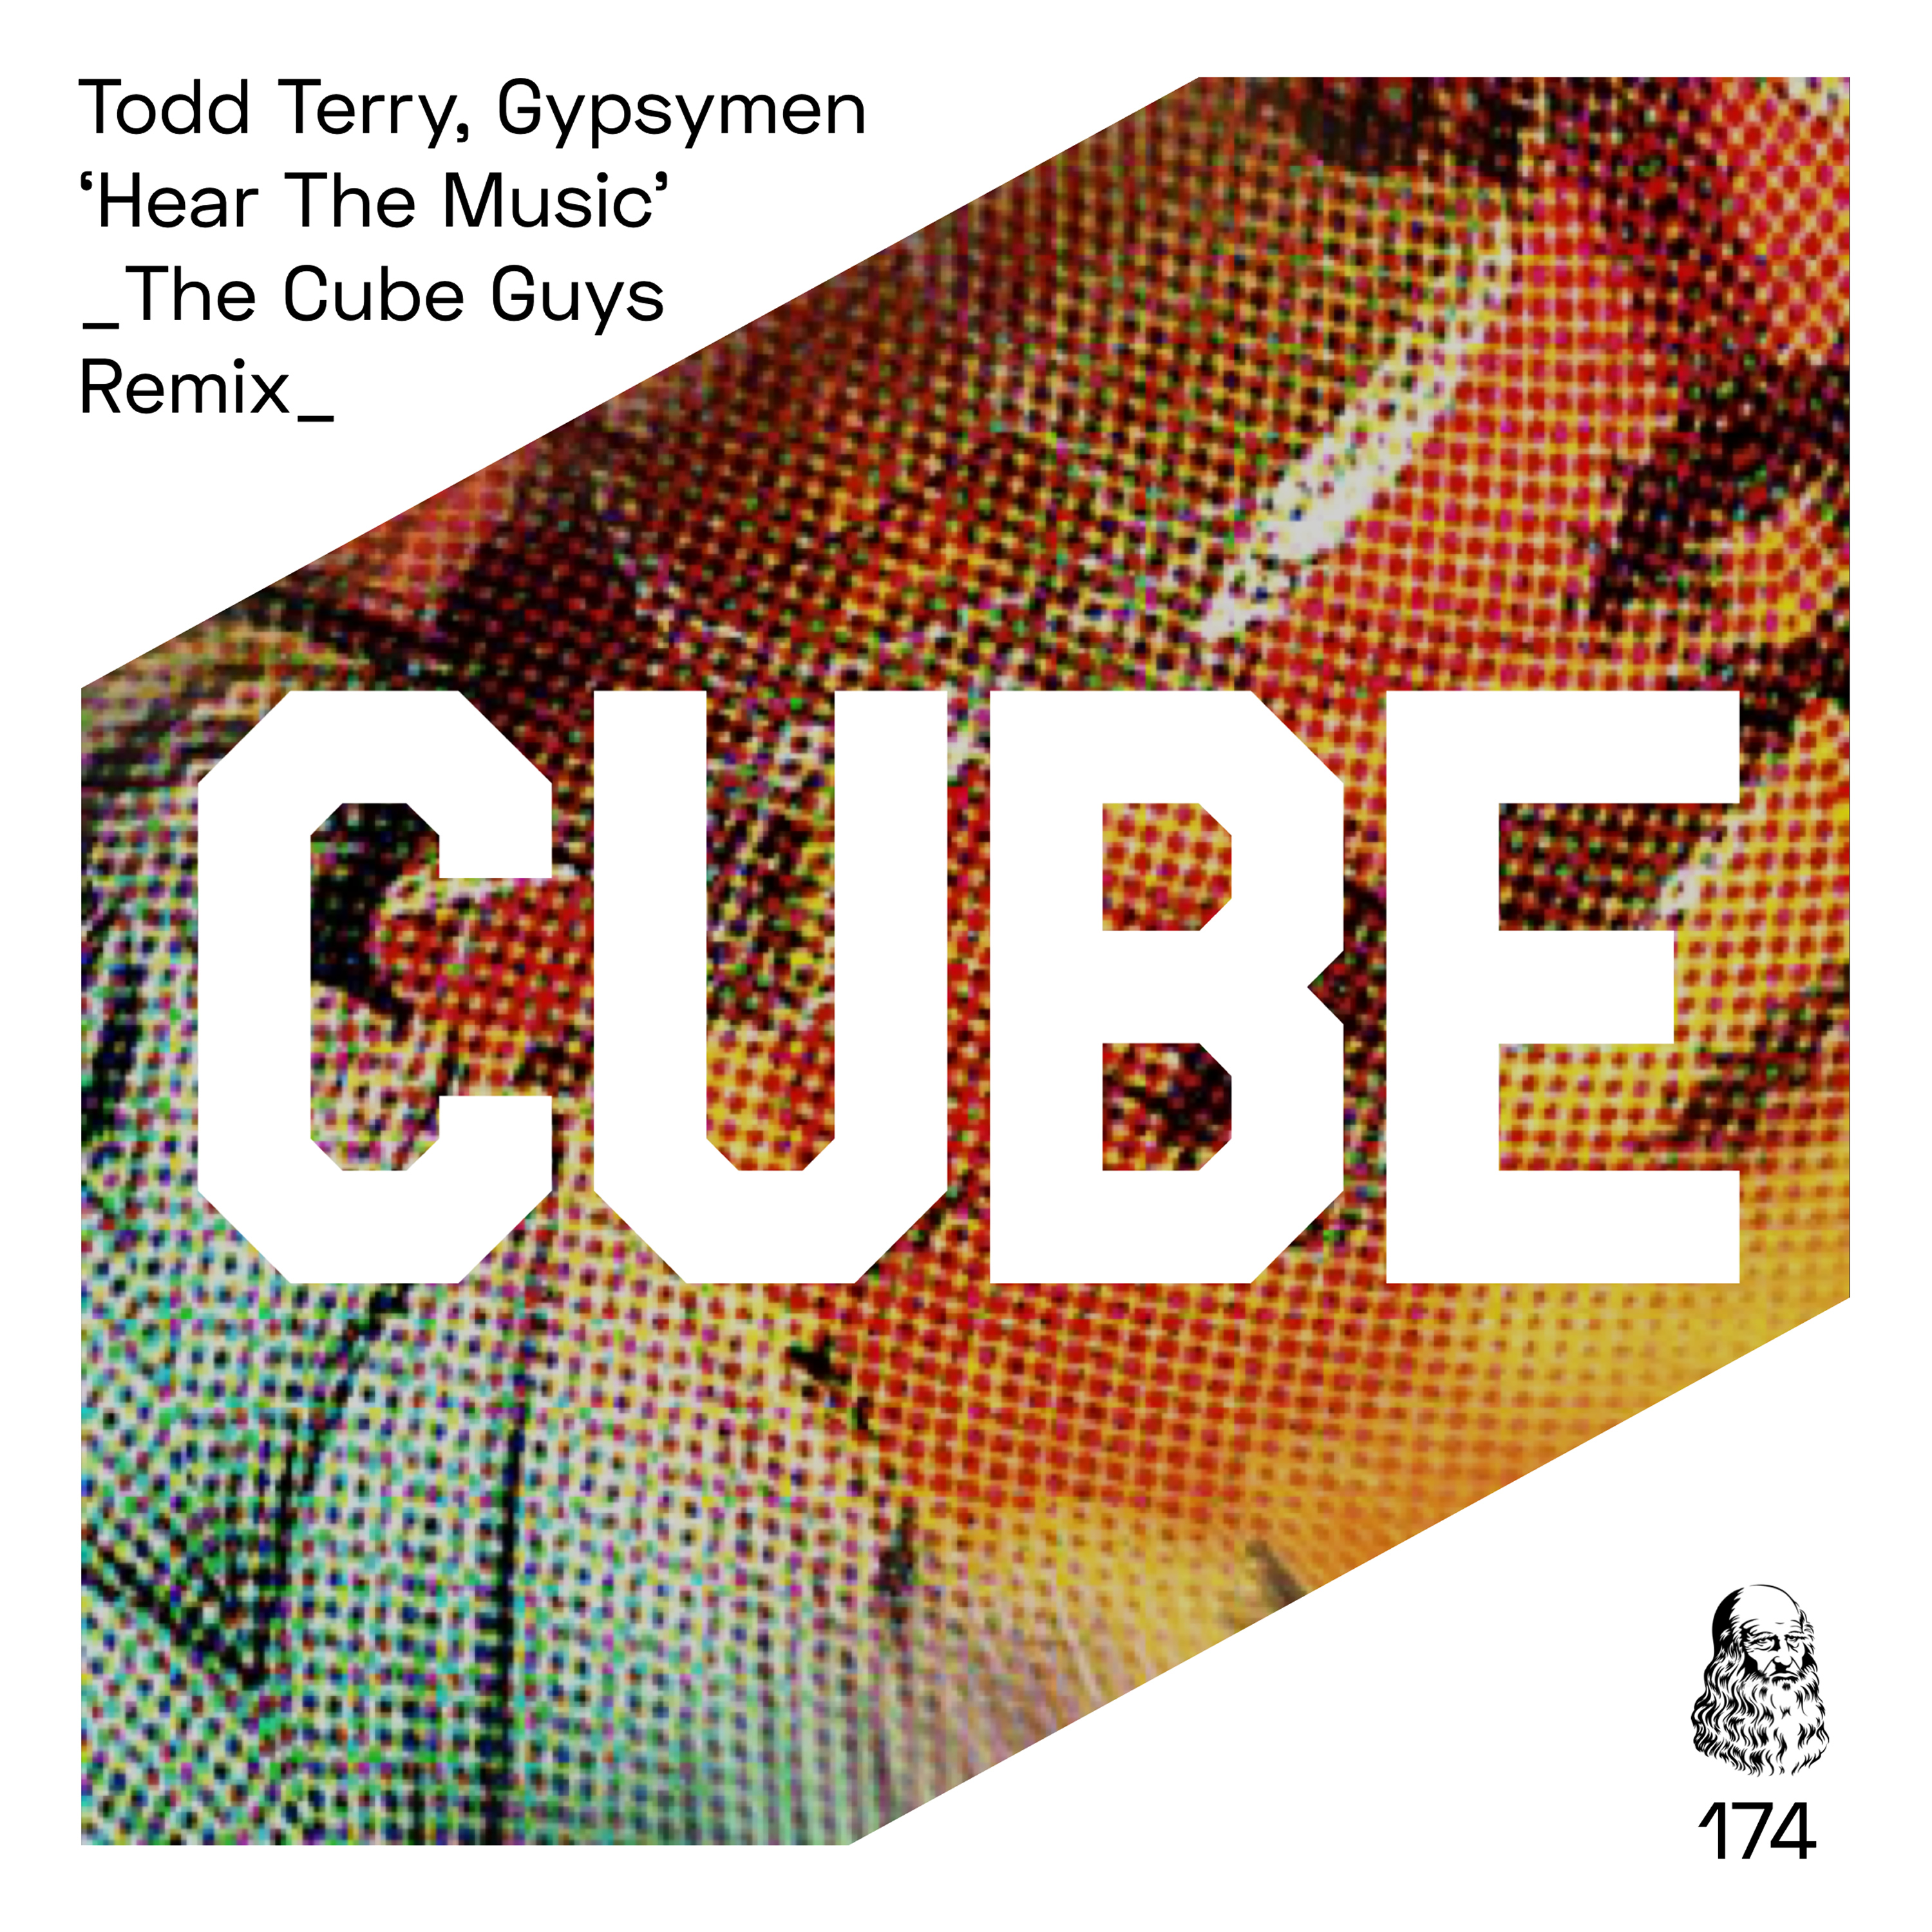 TODD TERRY, GYPSYMEN - Hear the music (The Cube Guys remix)